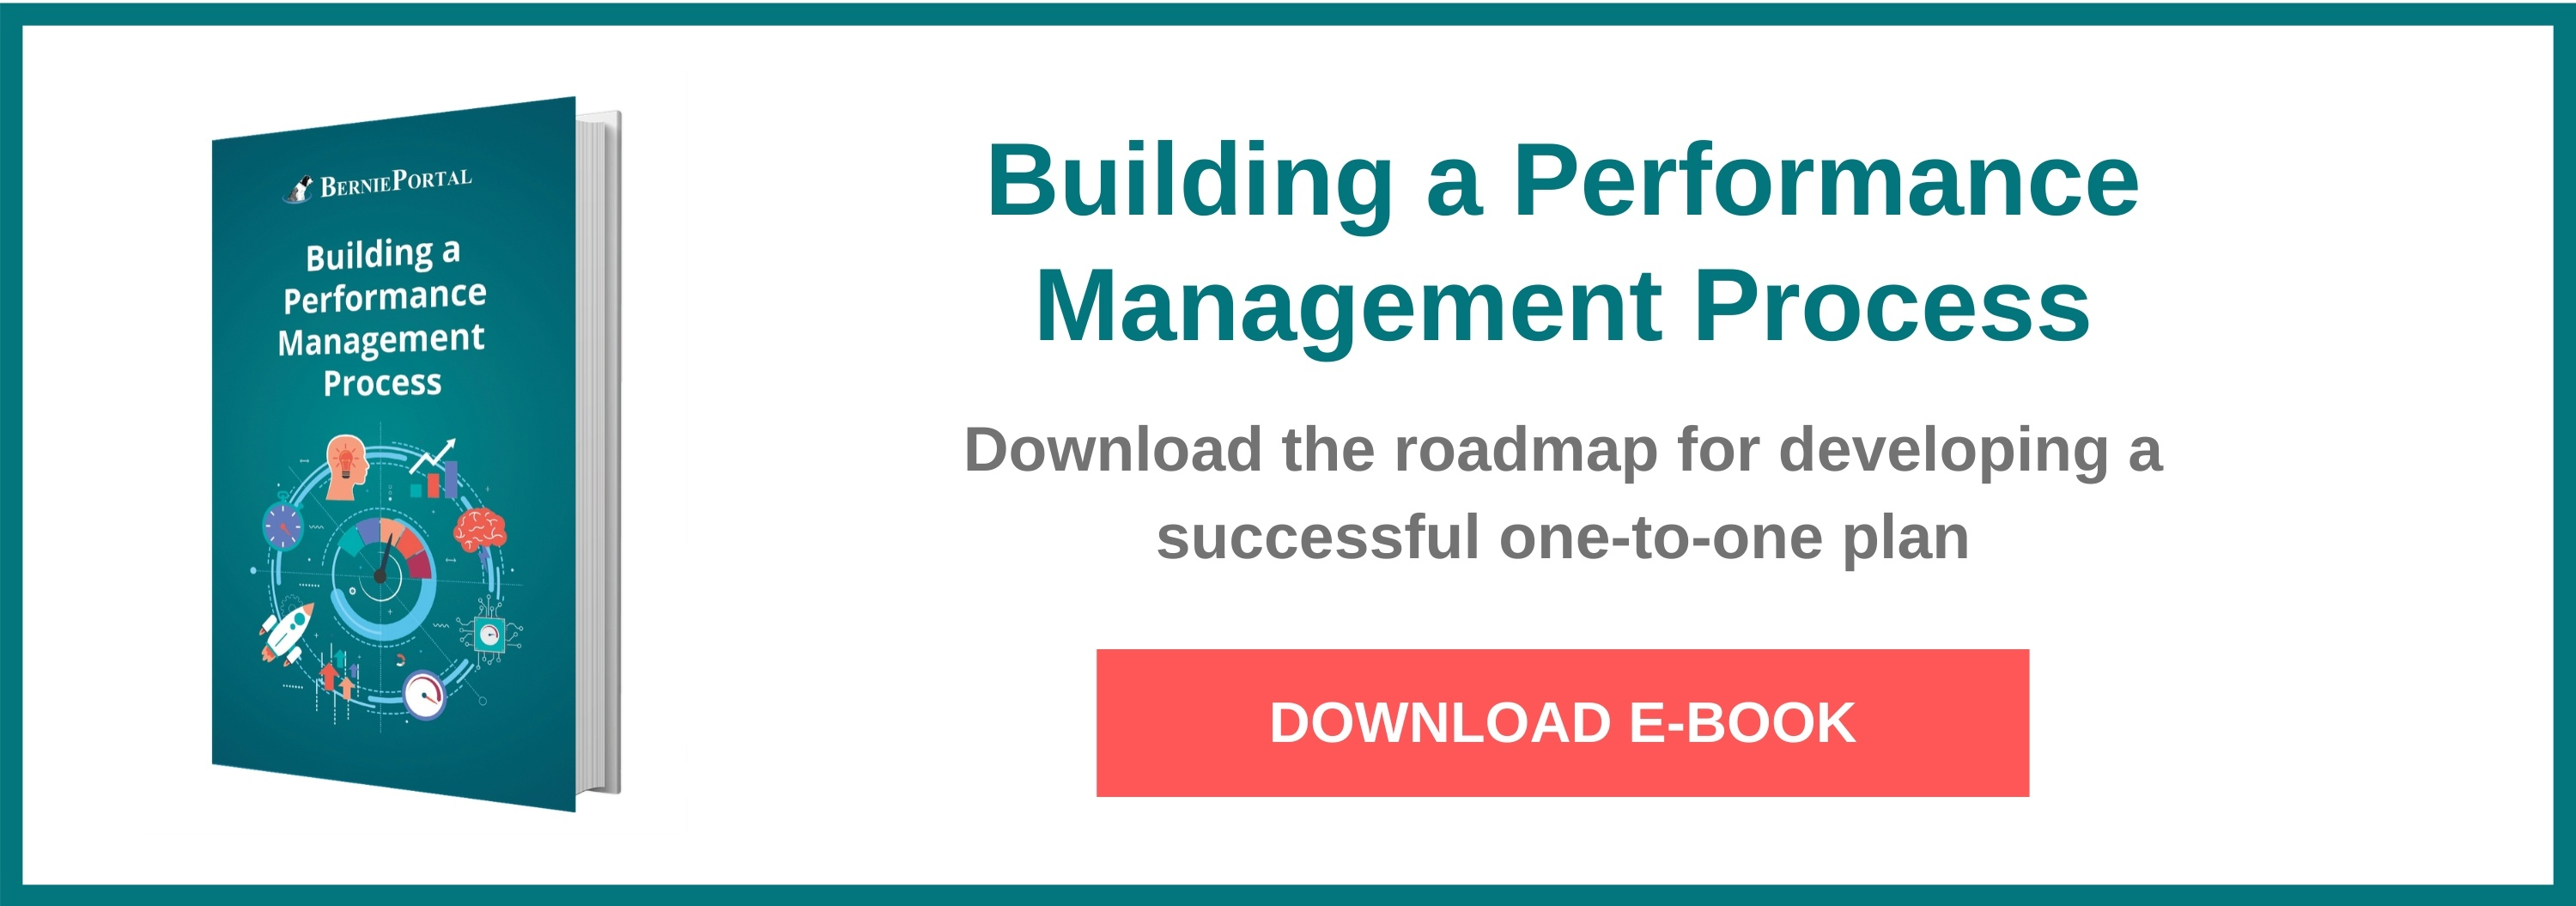 Building a Performance Management Process